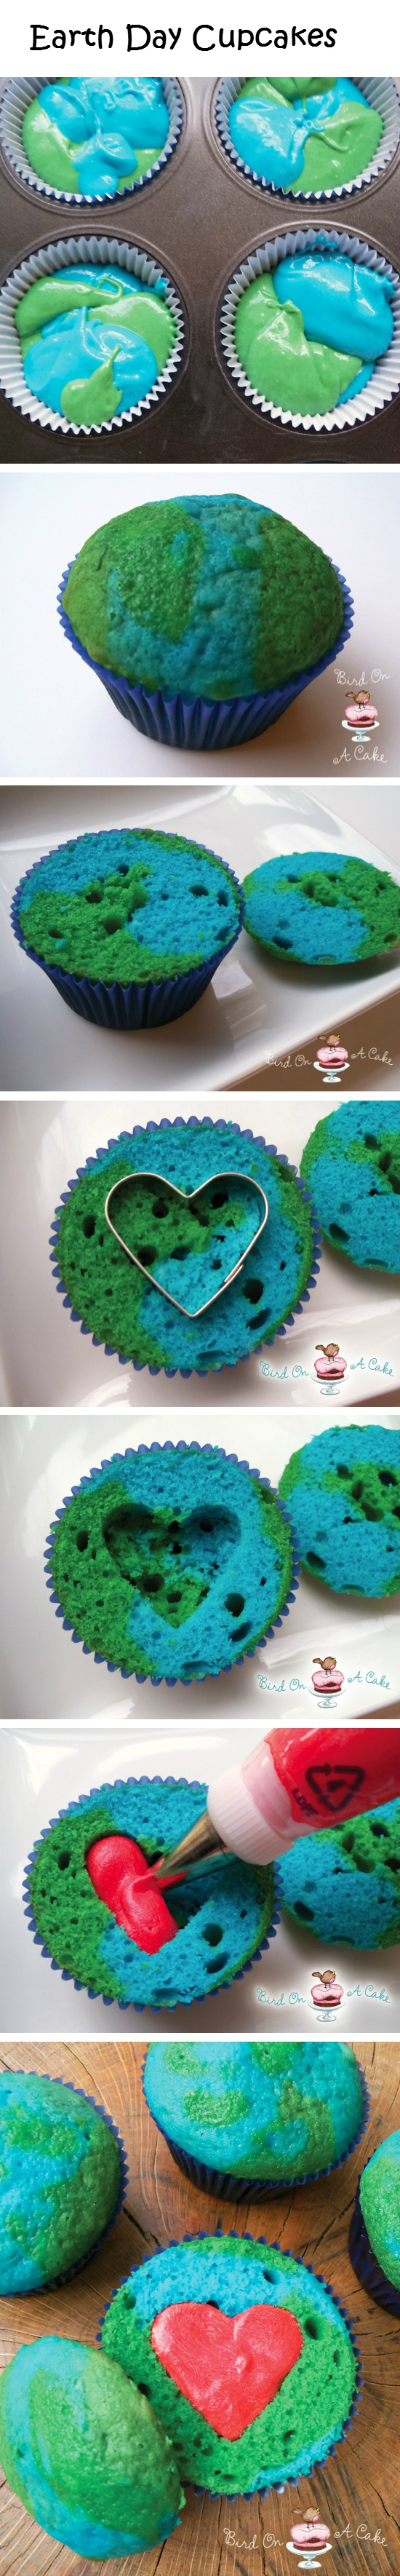 Earth Day Cupcake Idea